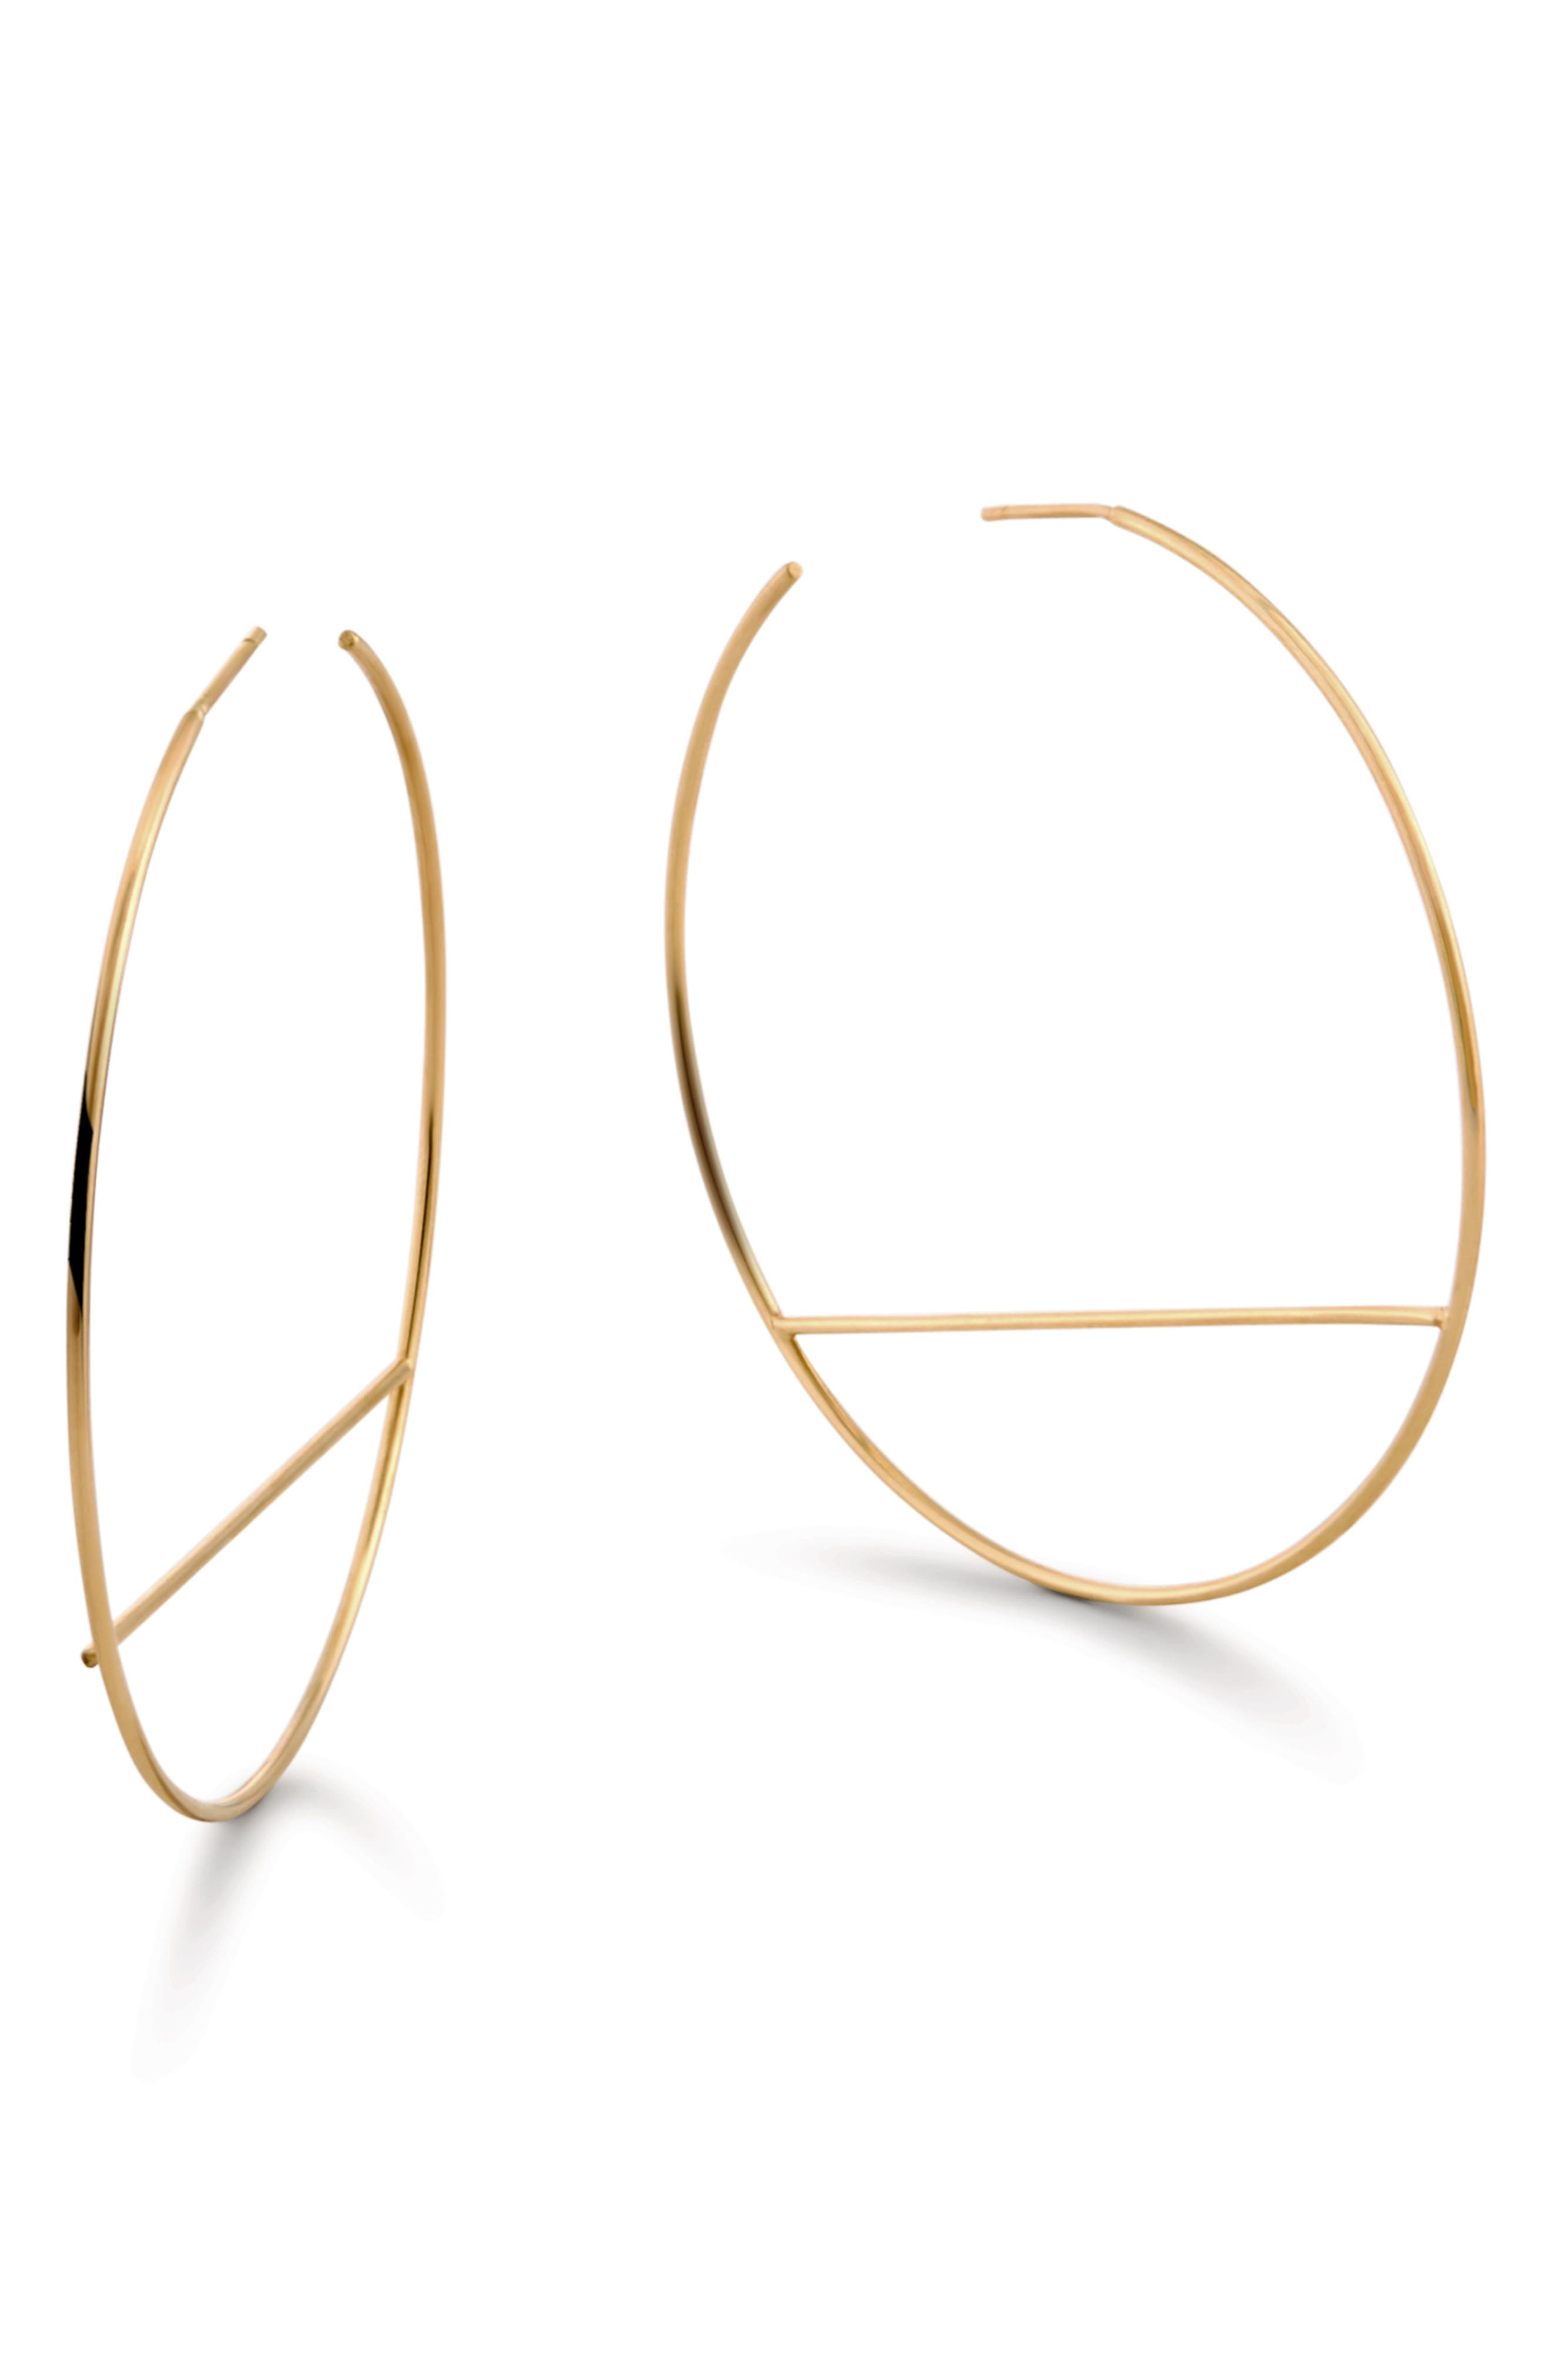 Wire Eclipse Hoop Earrings,                         Main,                         color, Yellow Gold